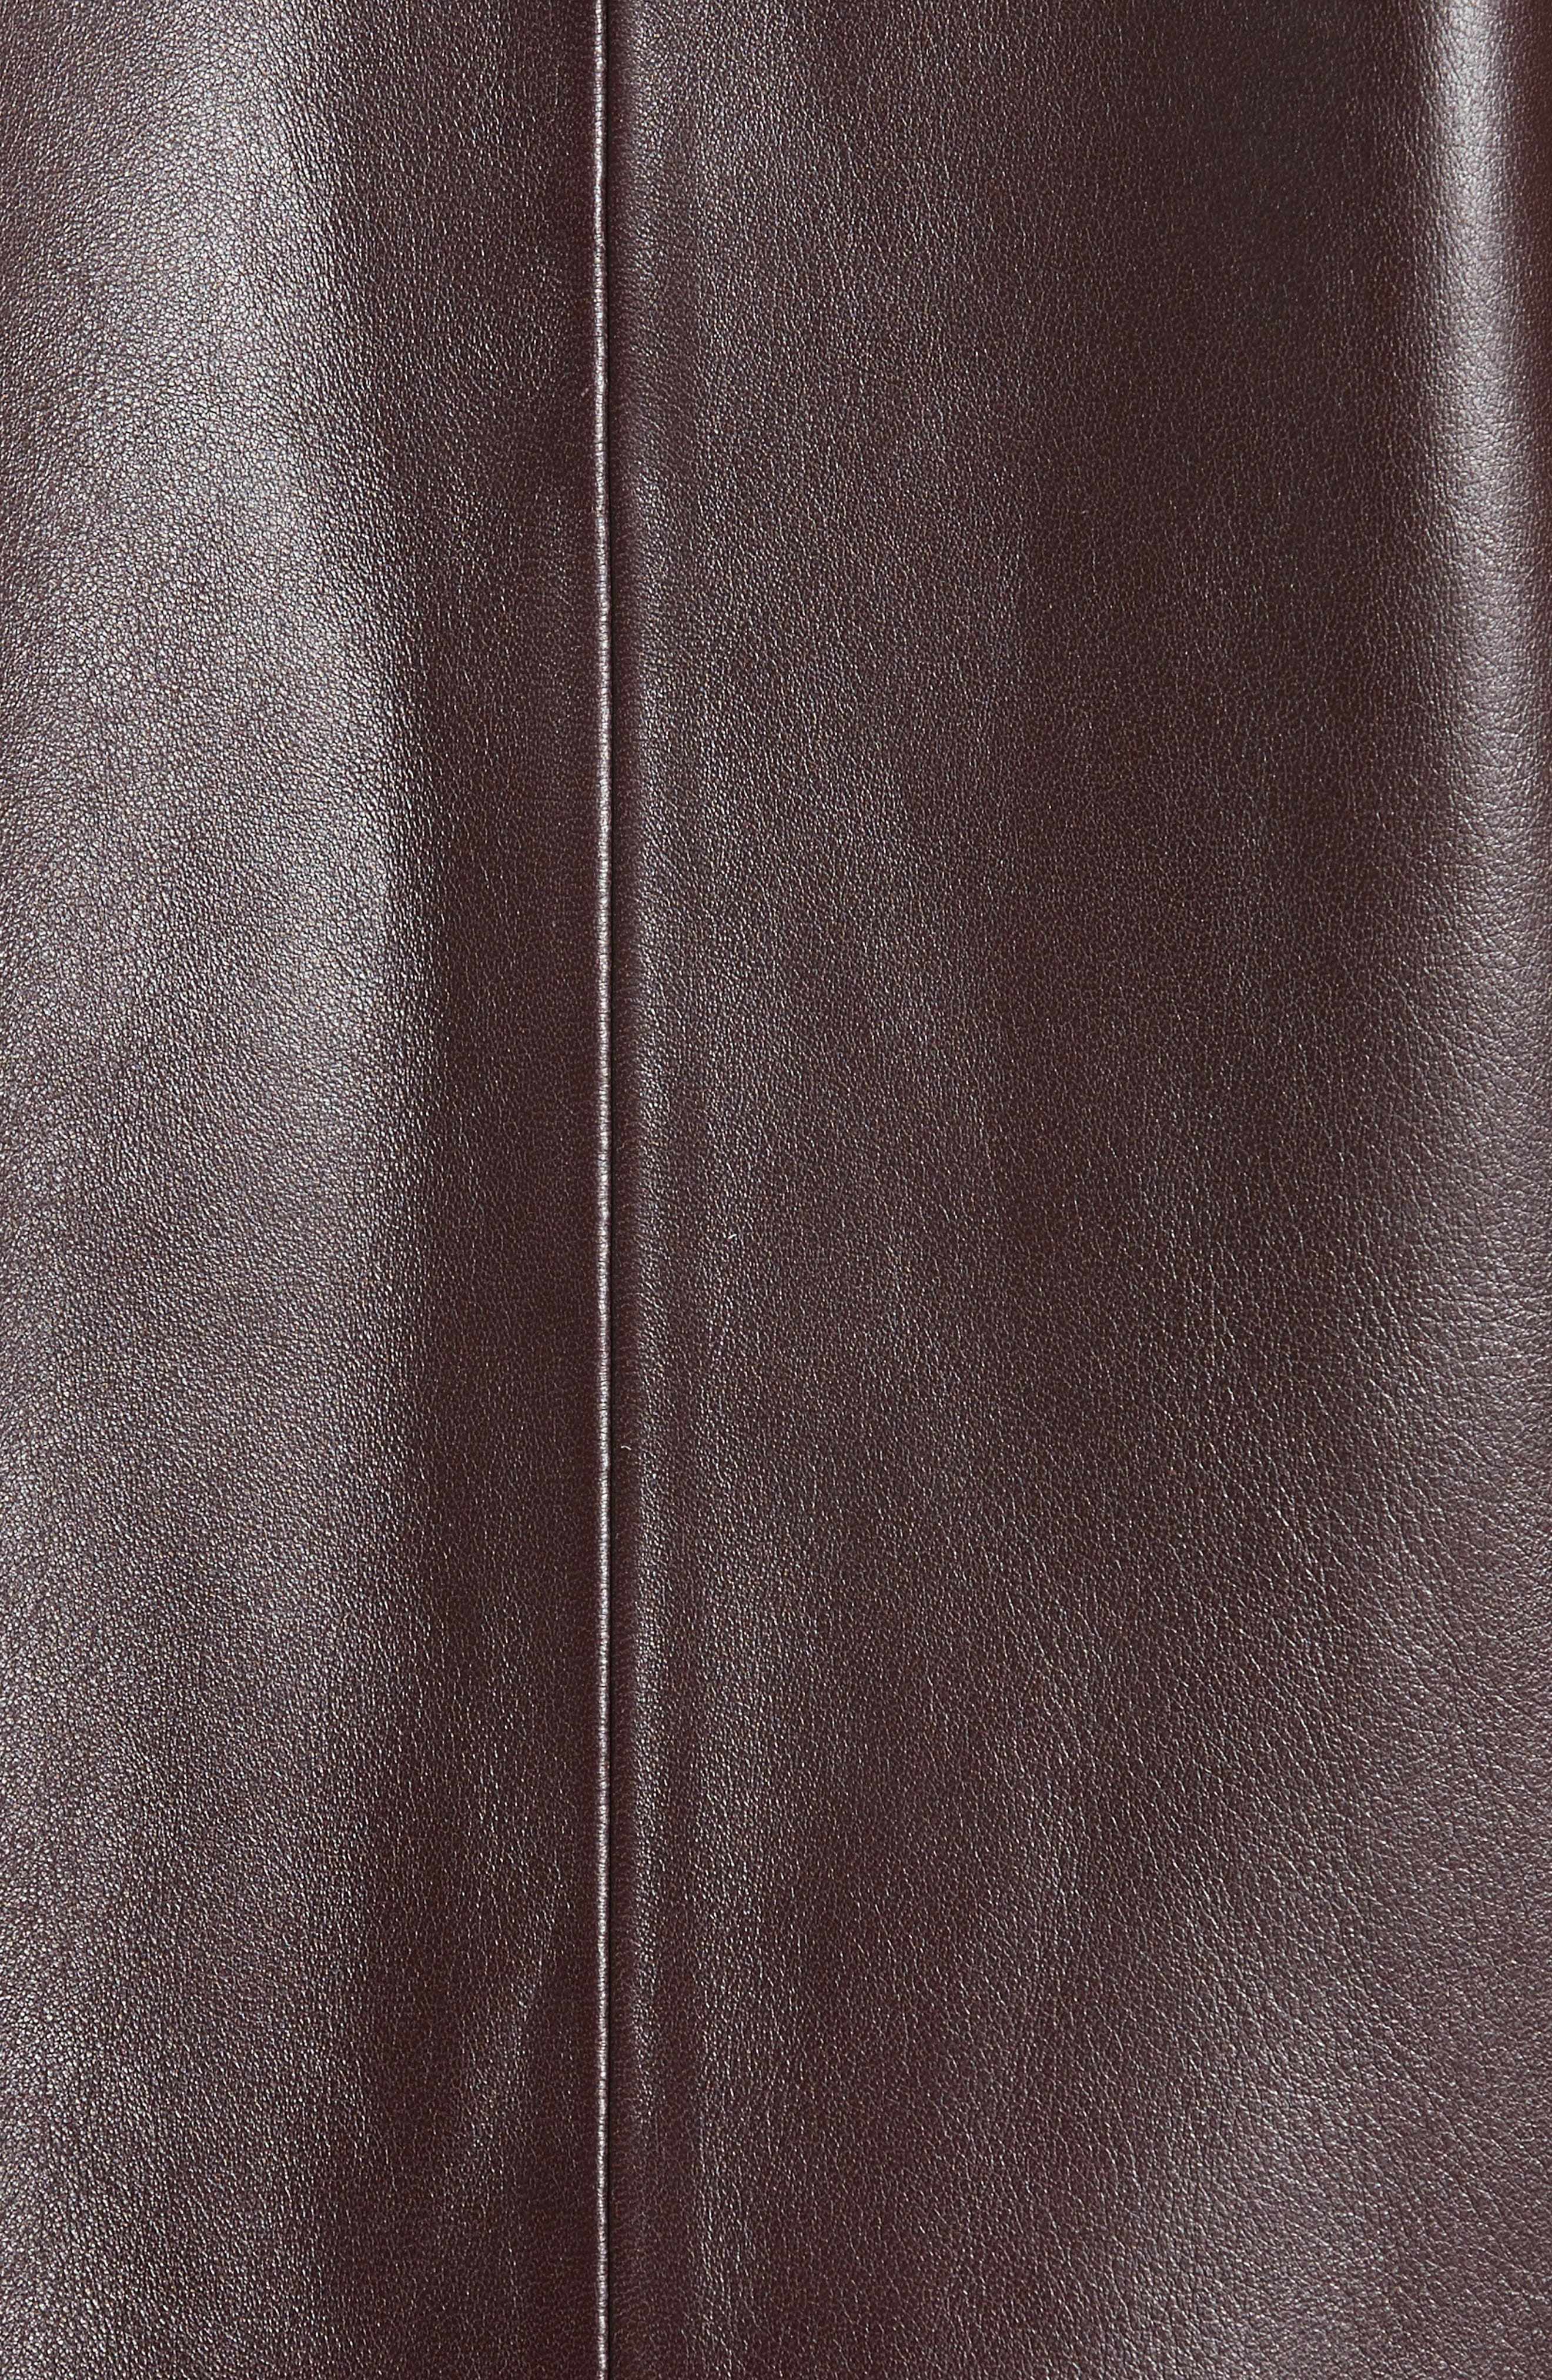 Acne Nate Leather Jacket,                             Alternate thumbnail 5, color,                             Oxblood Red